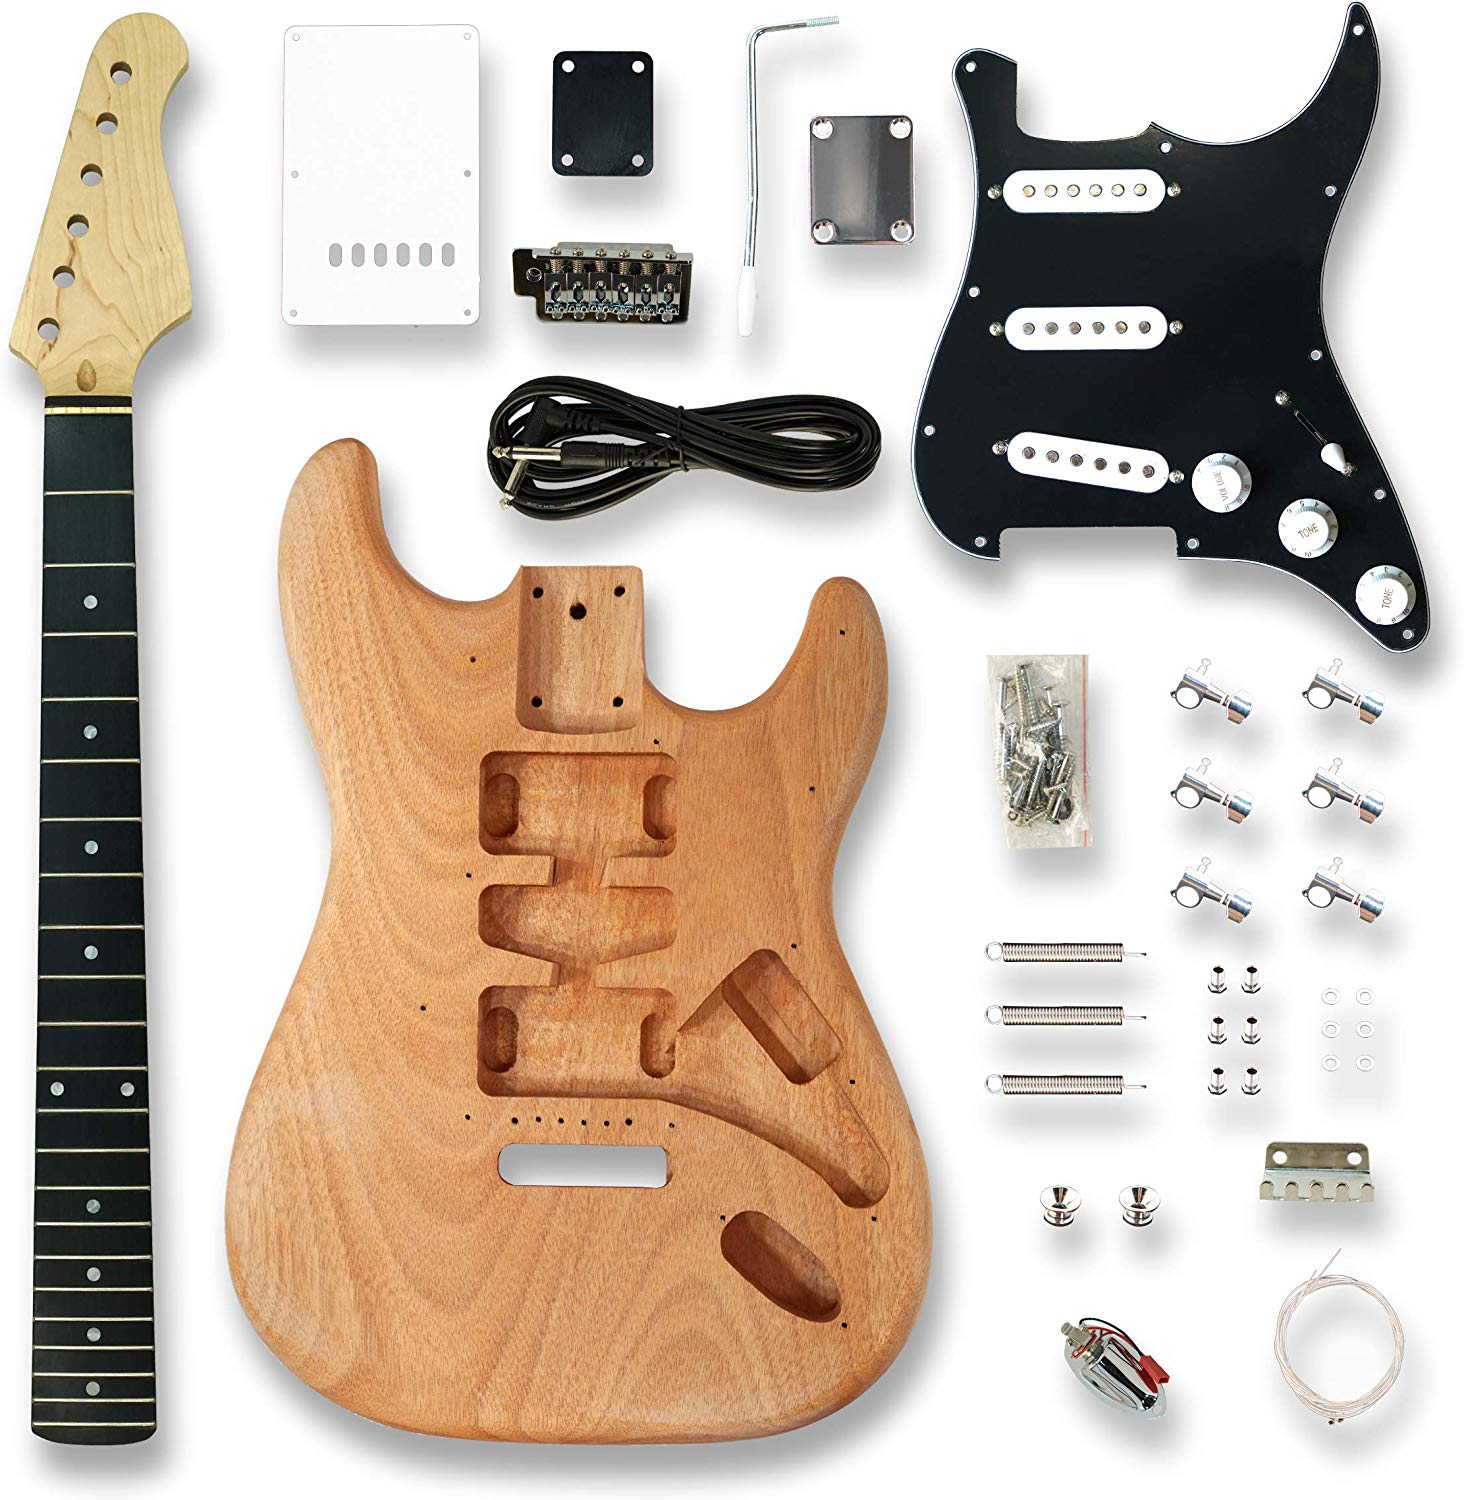 65+ Gifts for Guitar Players in 2020 - 81kFE0Kz6TL. AC SL1500